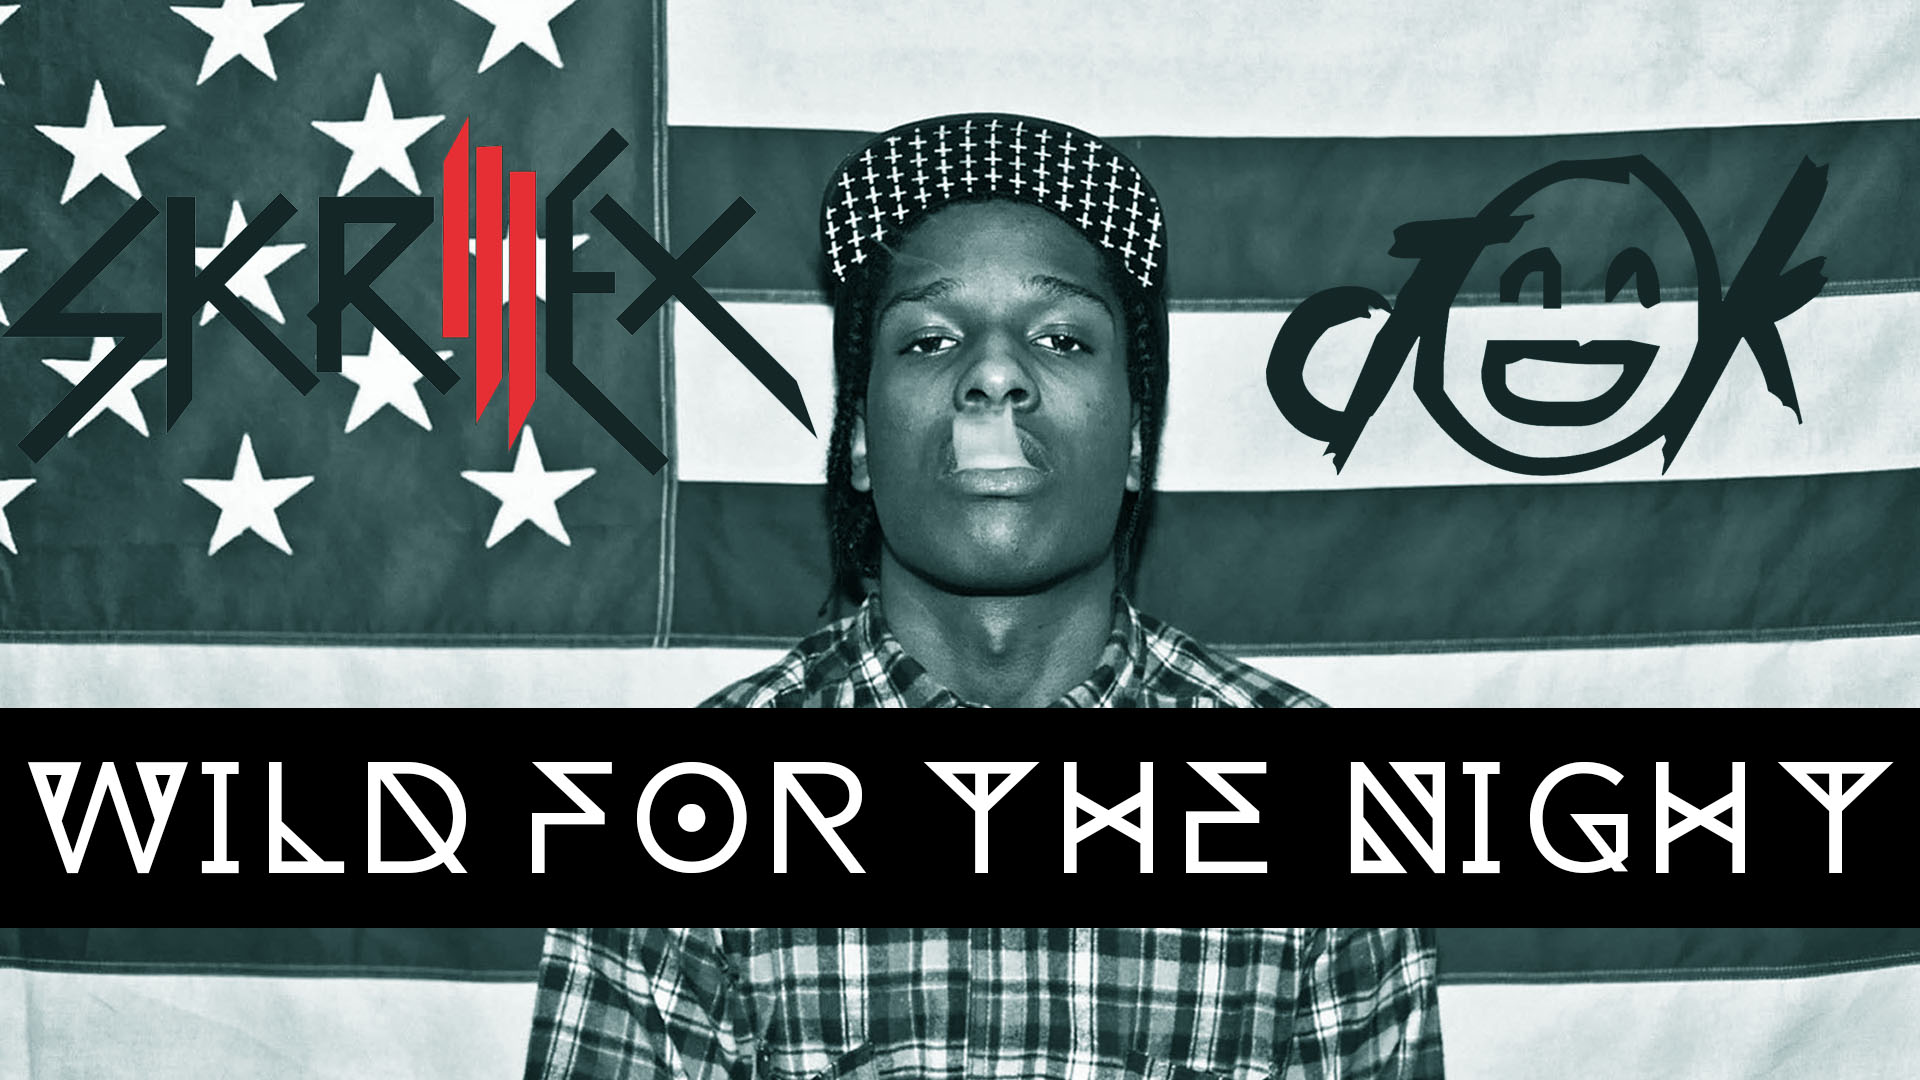 ASAP ROCKY WALLPAPERS FREE Wallpapers Background images 1920x1080